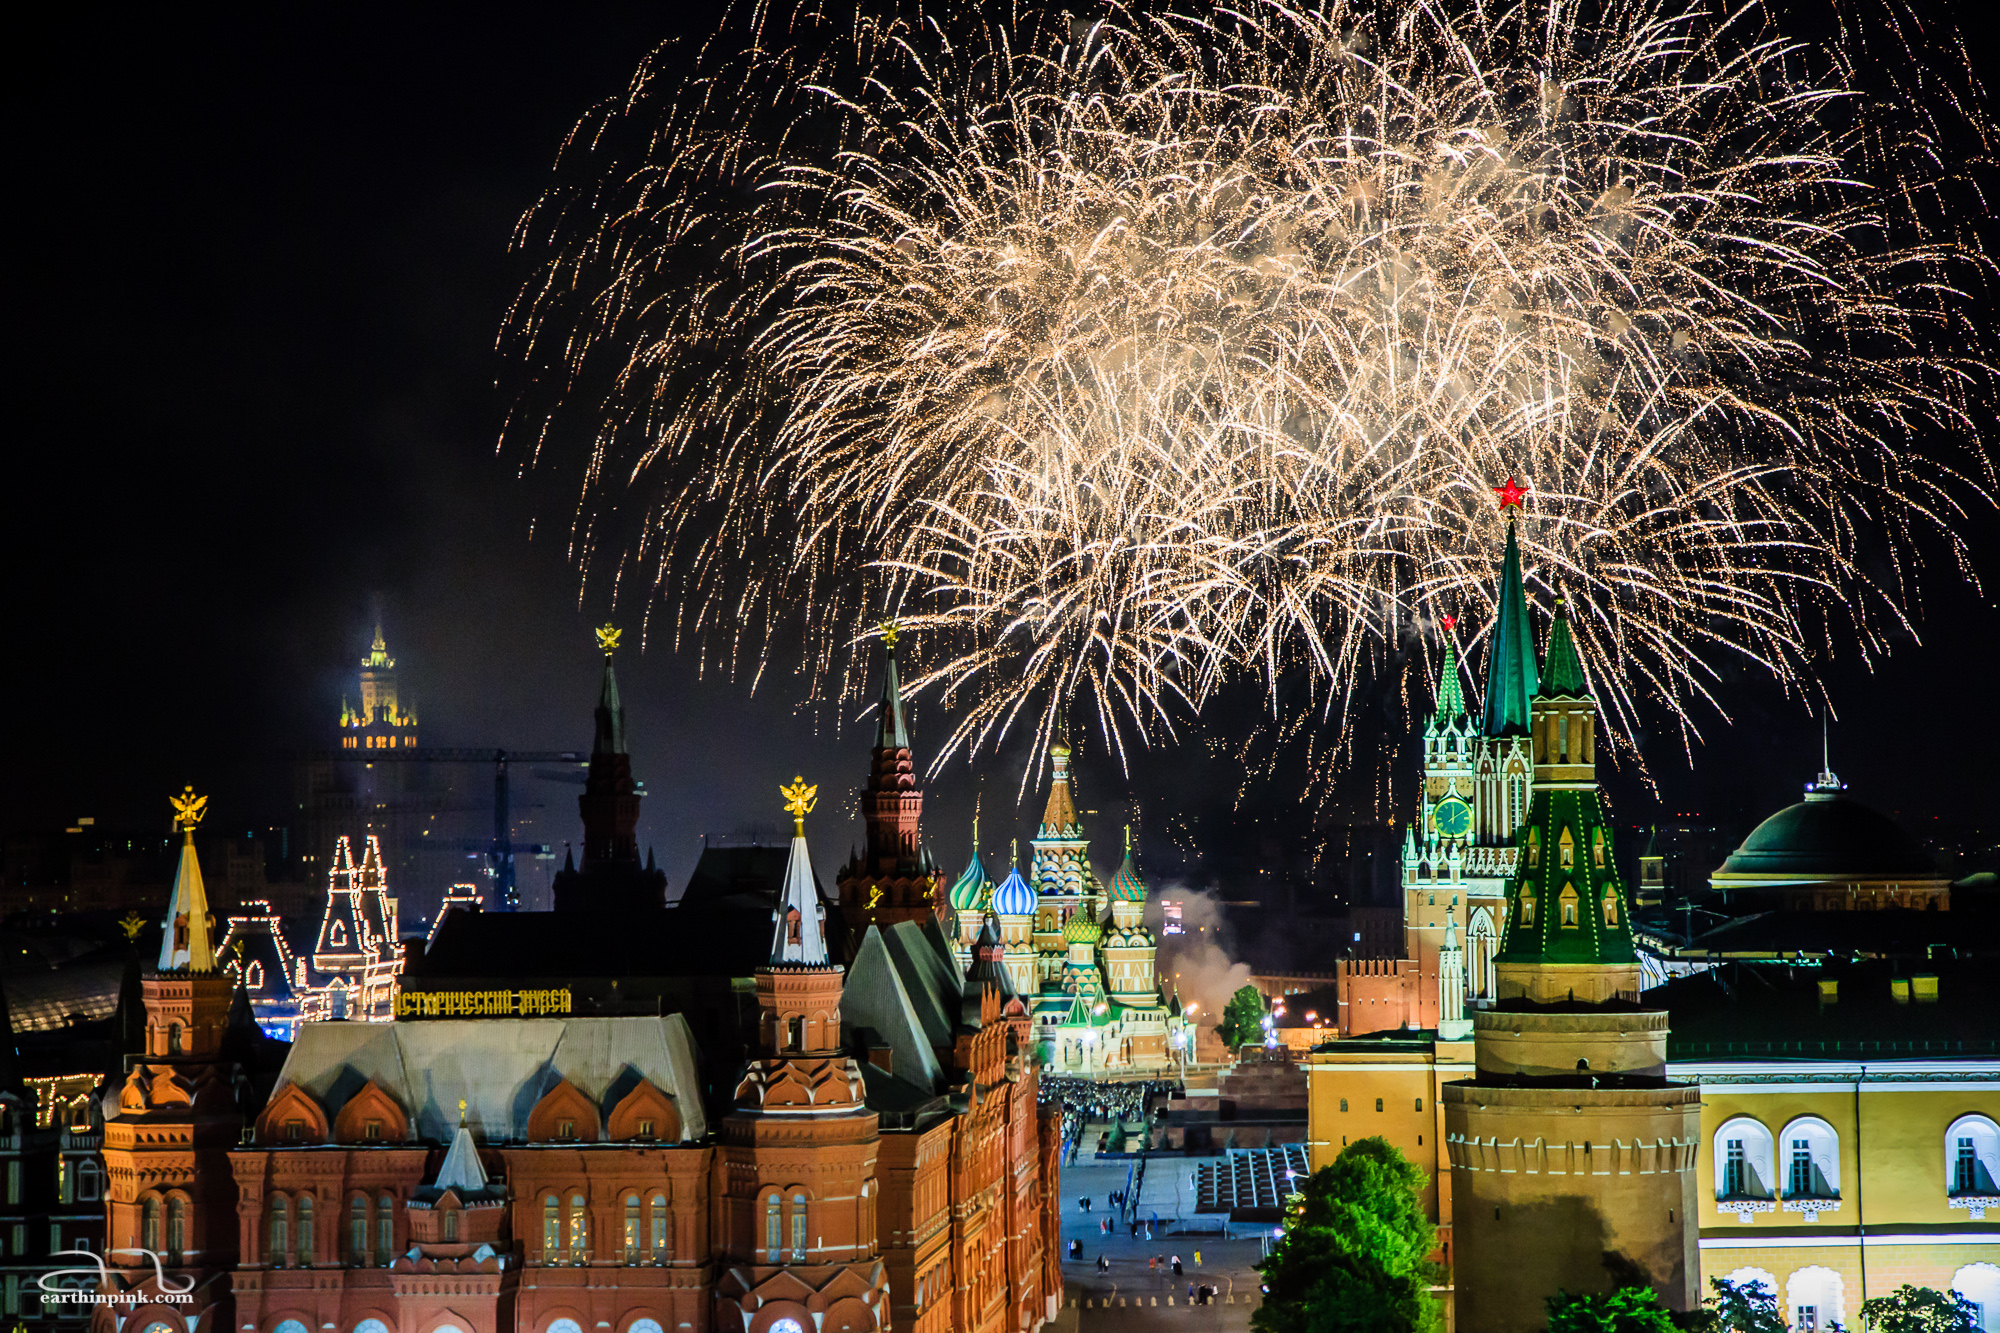 Fireworks above the Red Square in Moscow, in honor of the students' graduation from high school. I admire them for celebrating this kind of event in so much style!